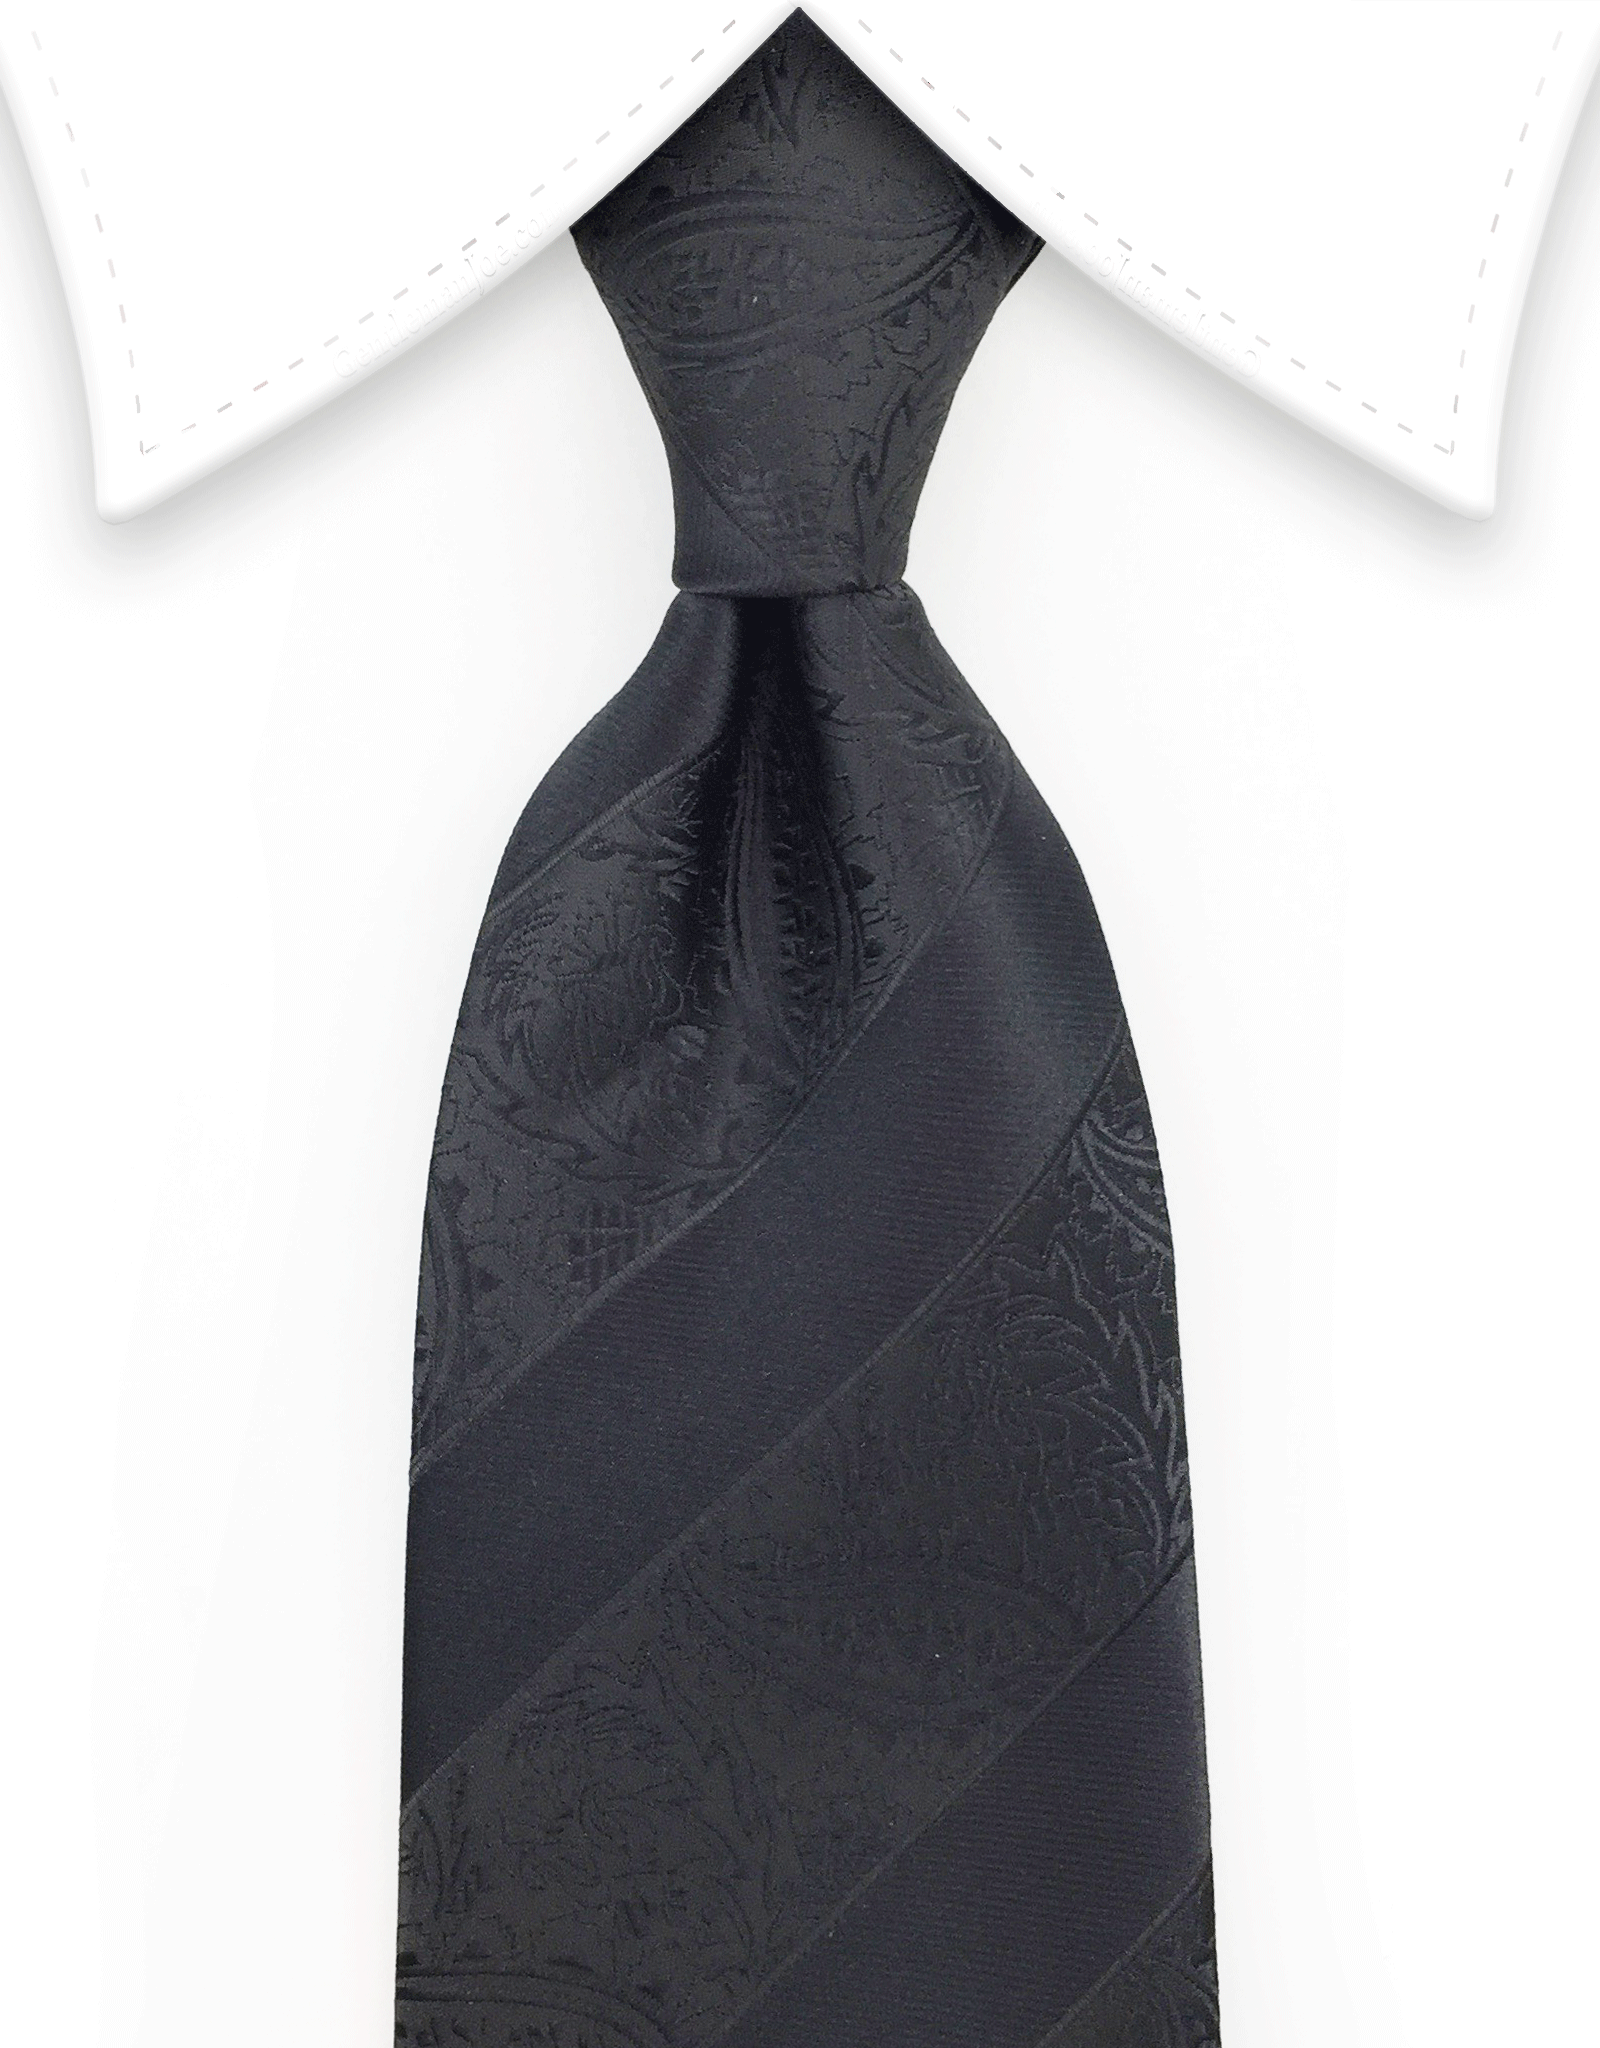 Black Paisley Tie with Black Stripes